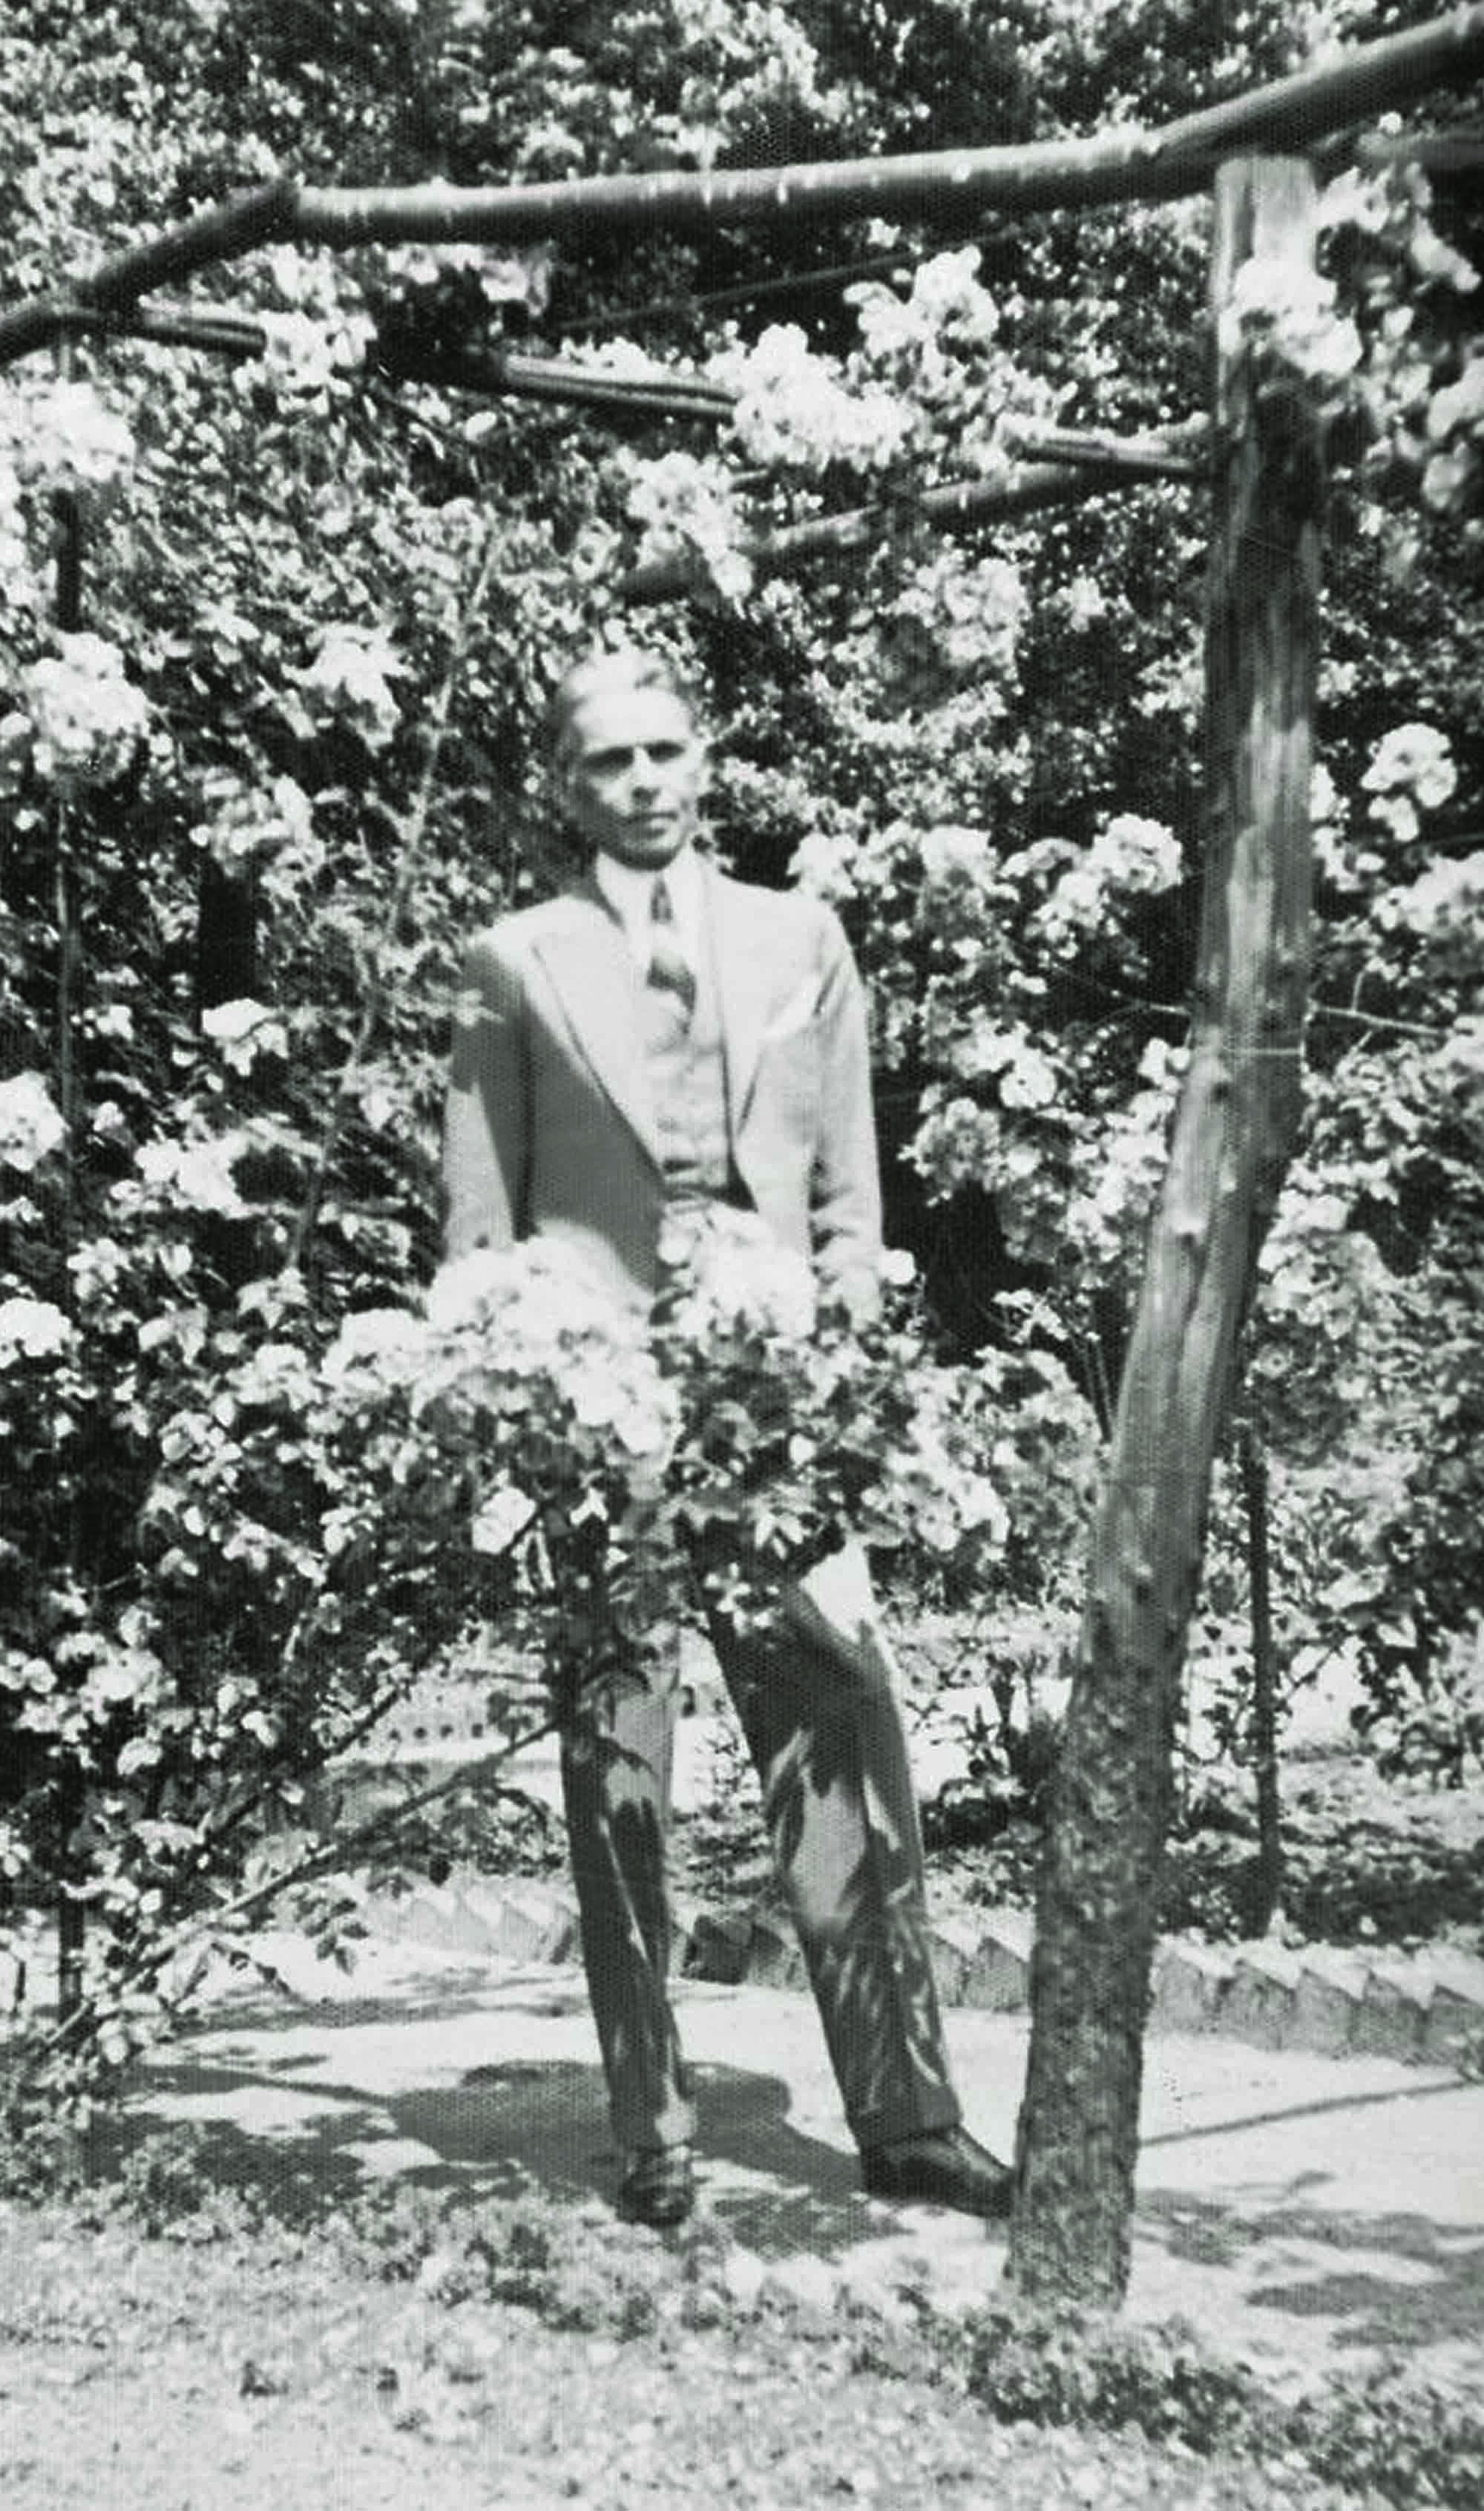 FLOWERS IN EXILE: Mr Jinnah on the grounds of his Hampstead home in the early 1930s. He moved to London with his daughter Dina and sister Miss Fatima Jinnah after the Second Round Table Conference ended in failure. During the four years of this self-imposed exile, Mr Jinnah had a thriving practice as a Privy Council lawyer. In 1934, he returned to India to assume the presidency of the All-India Muslim League.